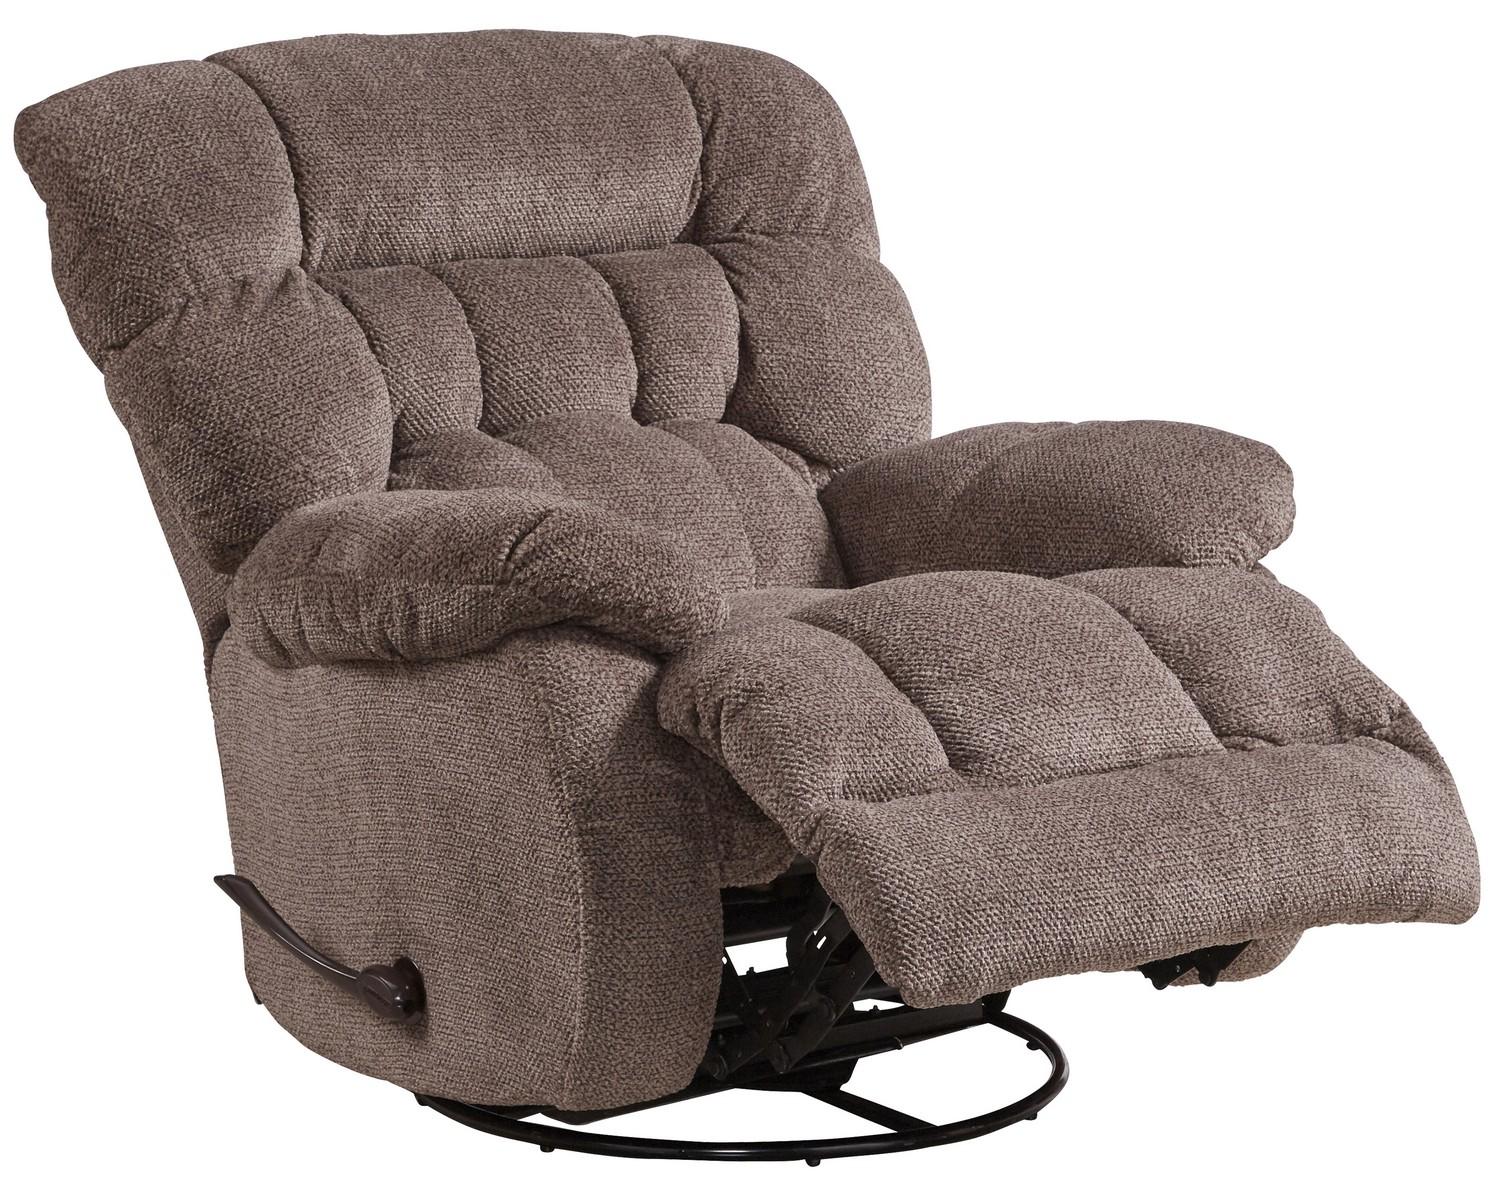 CatNapper Daly Power Lay Flat Recliner - Chateau